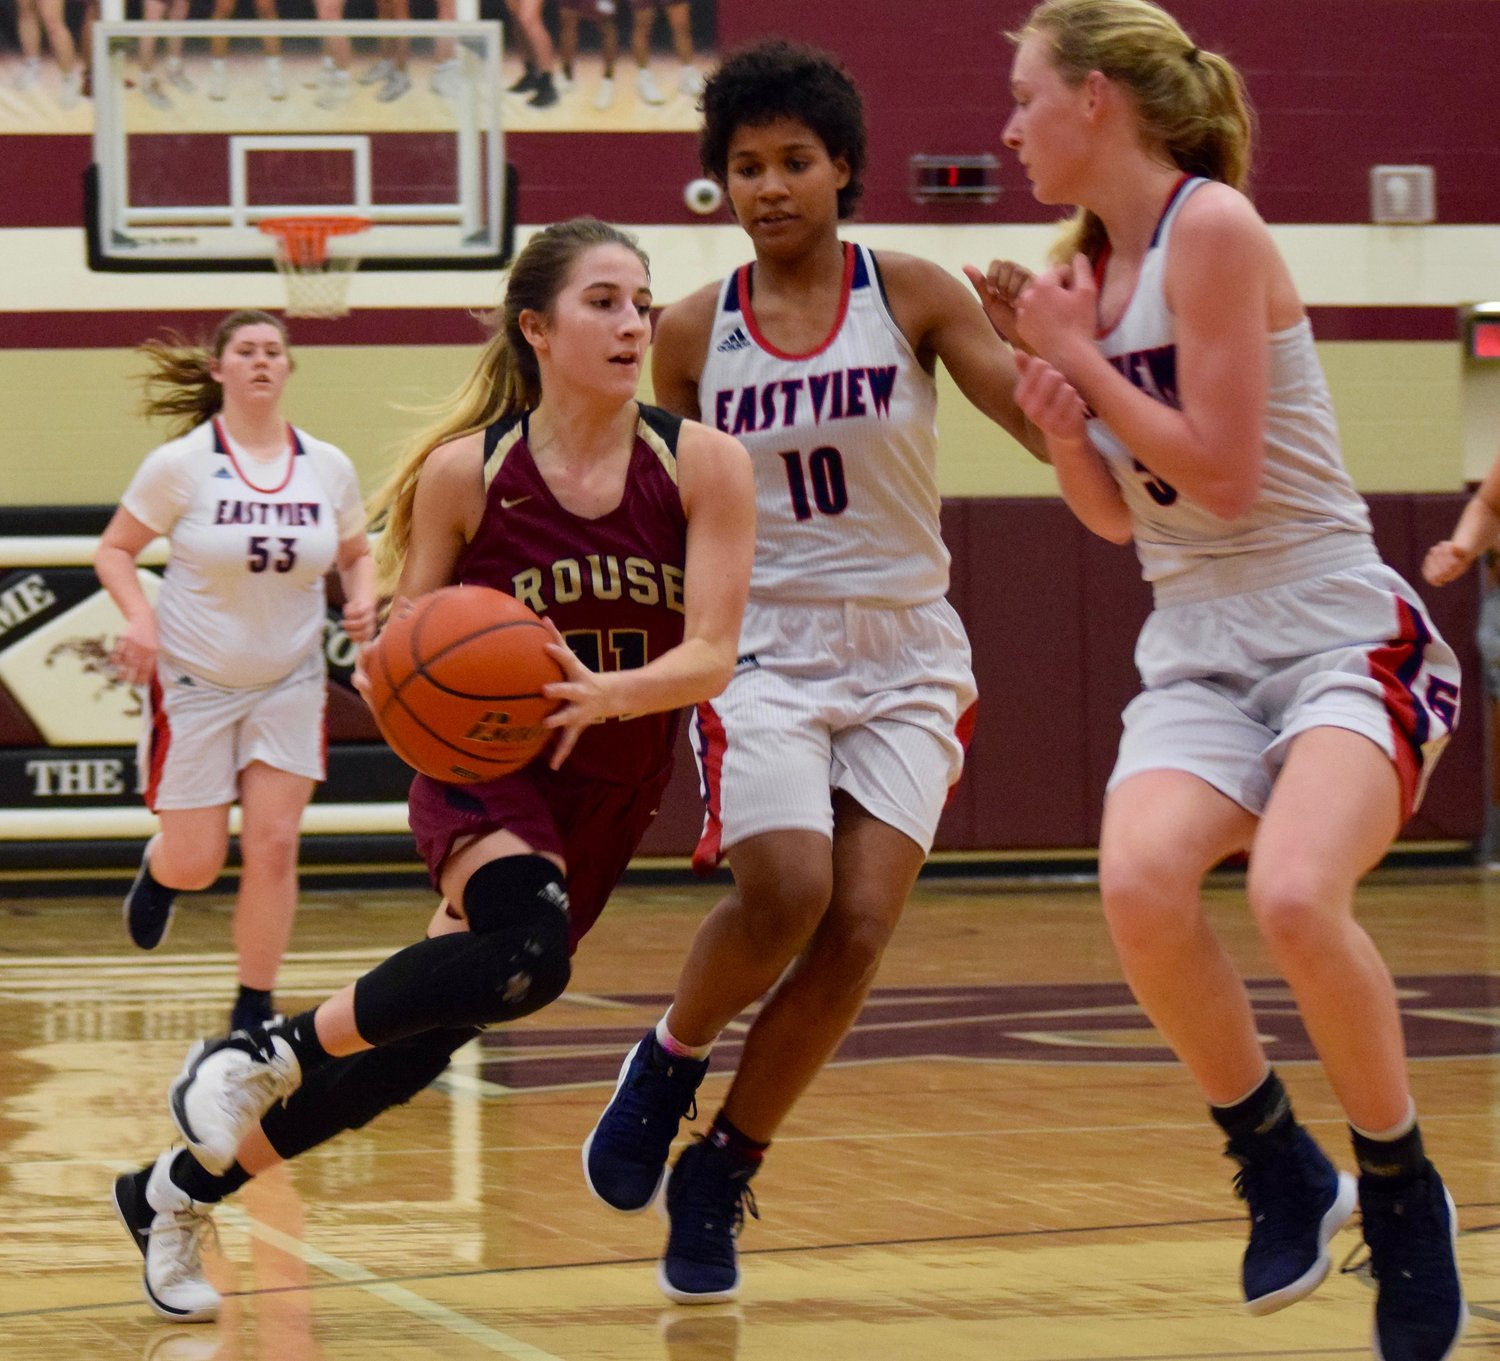 Madyson Shelley and Rouse lost to East View 35-30 in the first round of the playoffs Monday night at Round Rock High School.